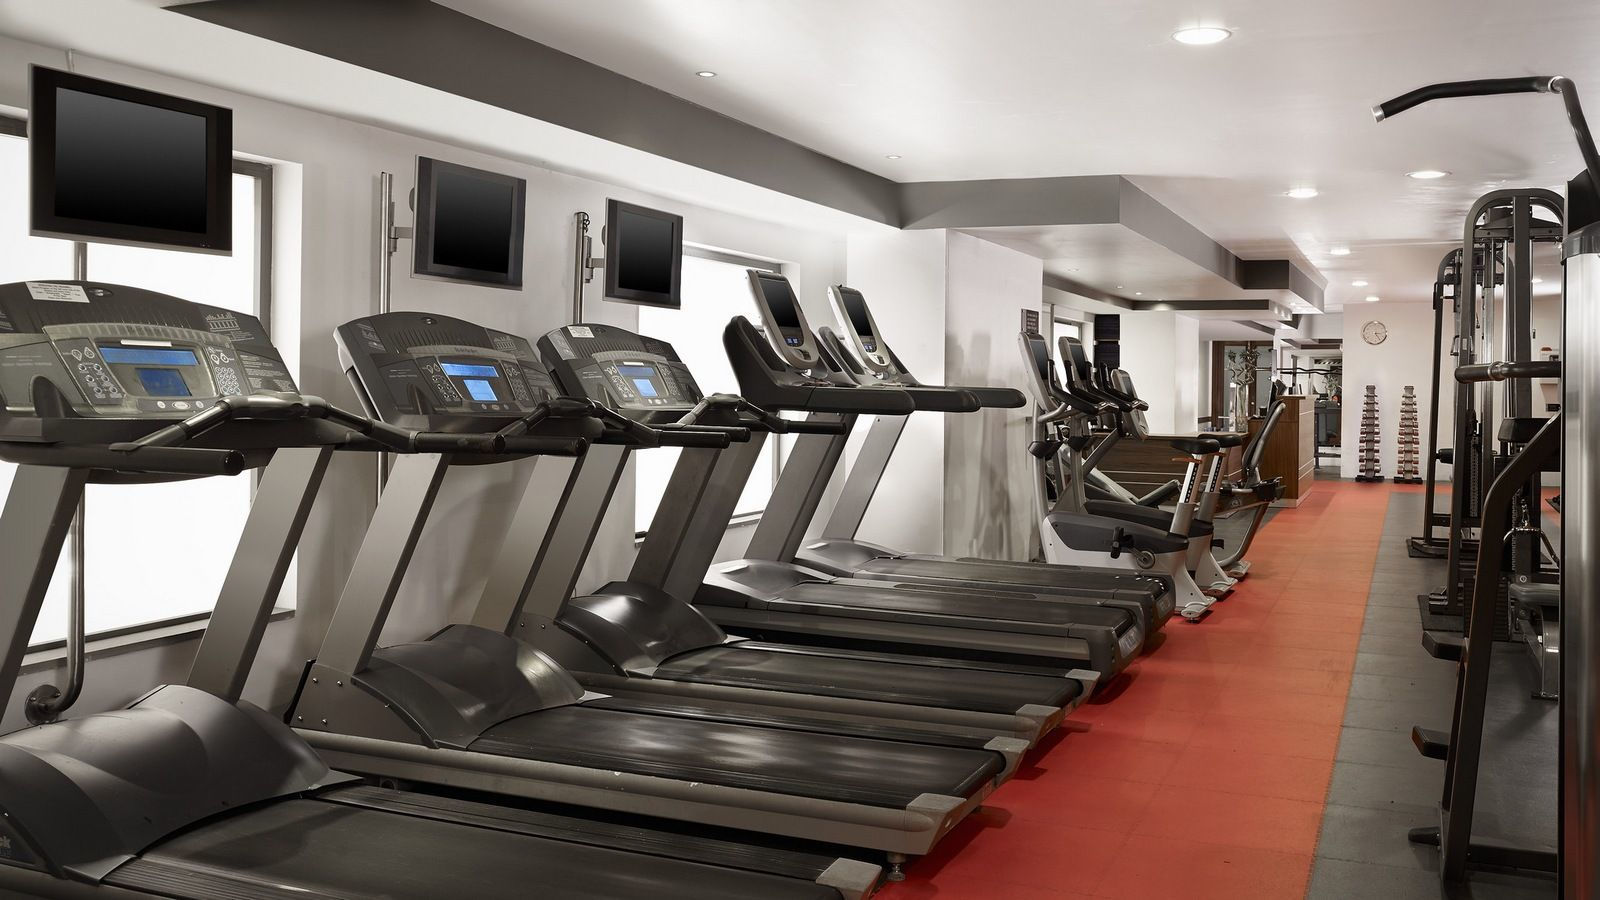 Explore our gym equipment and become a member at the Lotus Fitness Gym,  Le Méridien St. Julians Hotel & Spa